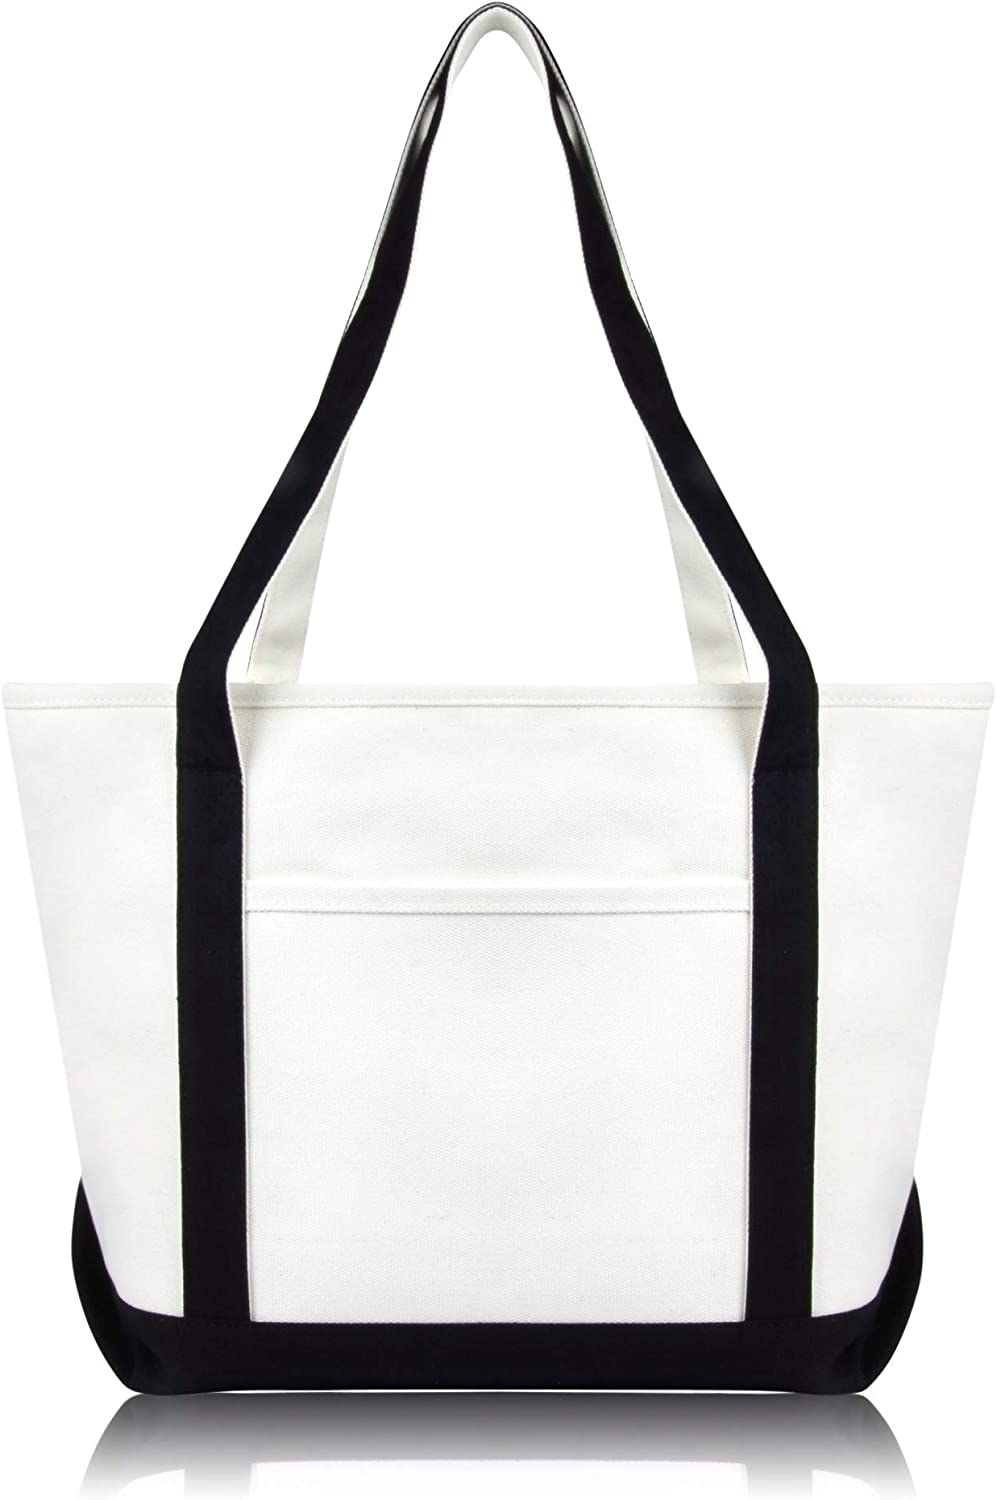 DALIX Daily Shoulder Tote Bag Premium Cotton in Black